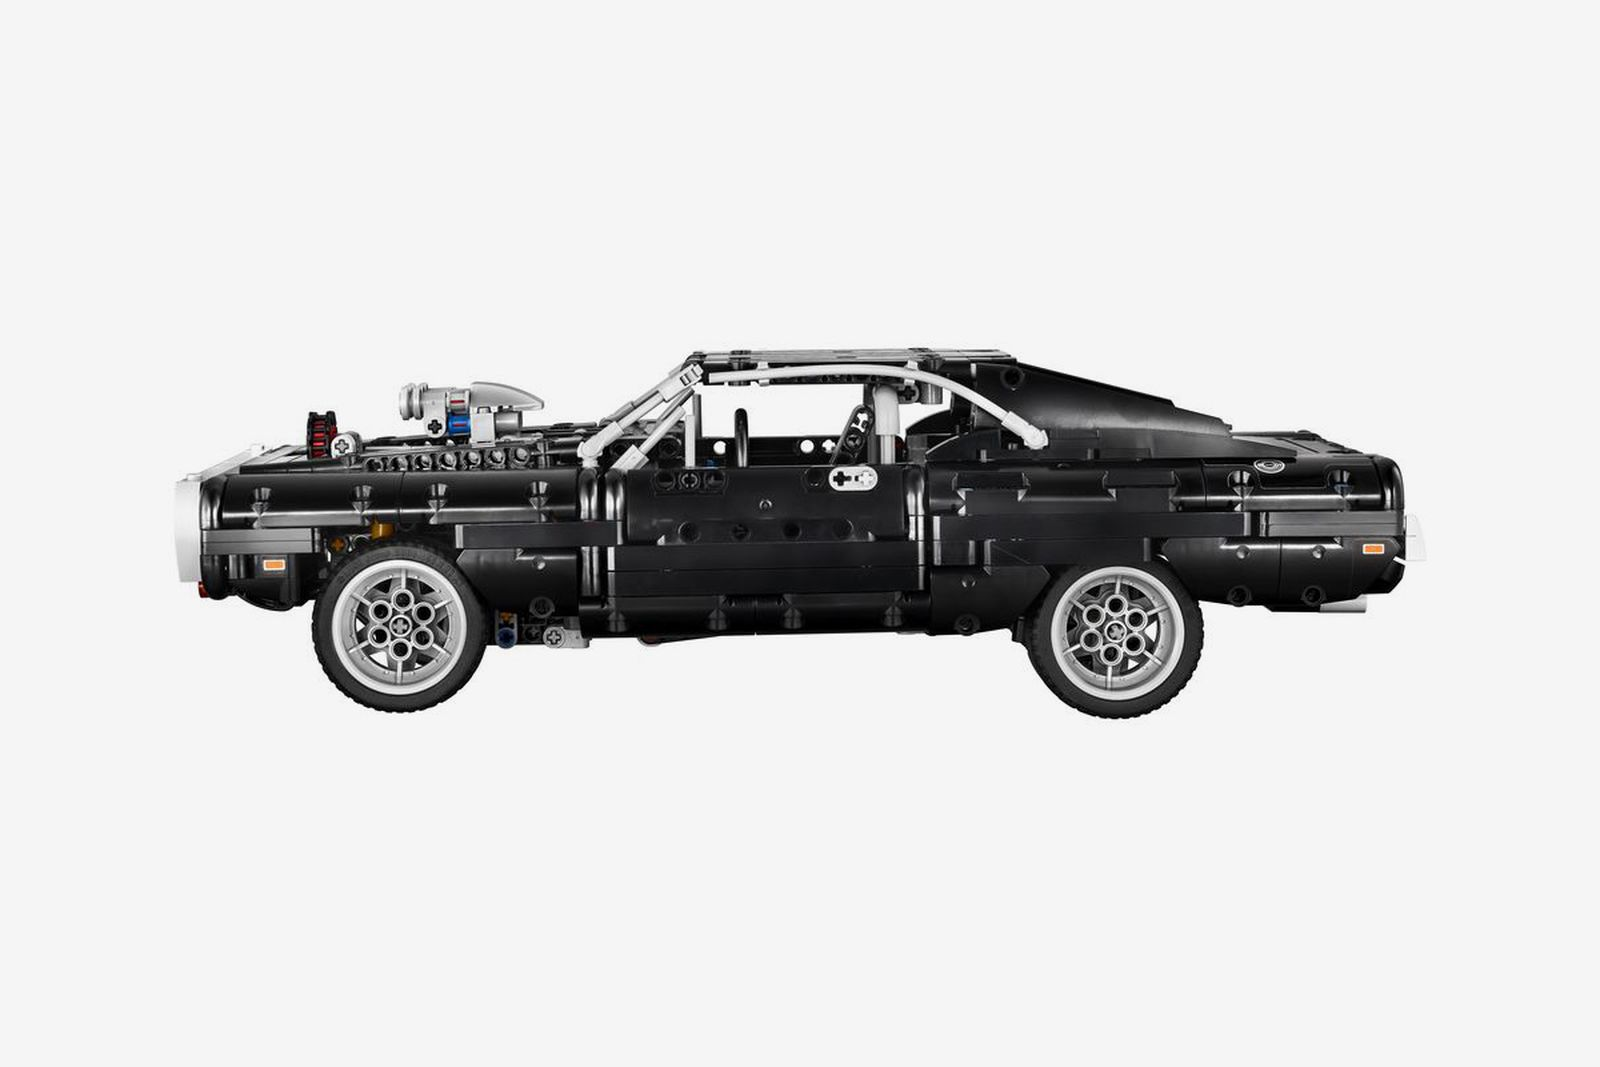 lego-fast-and-furious-dodge-charger-12